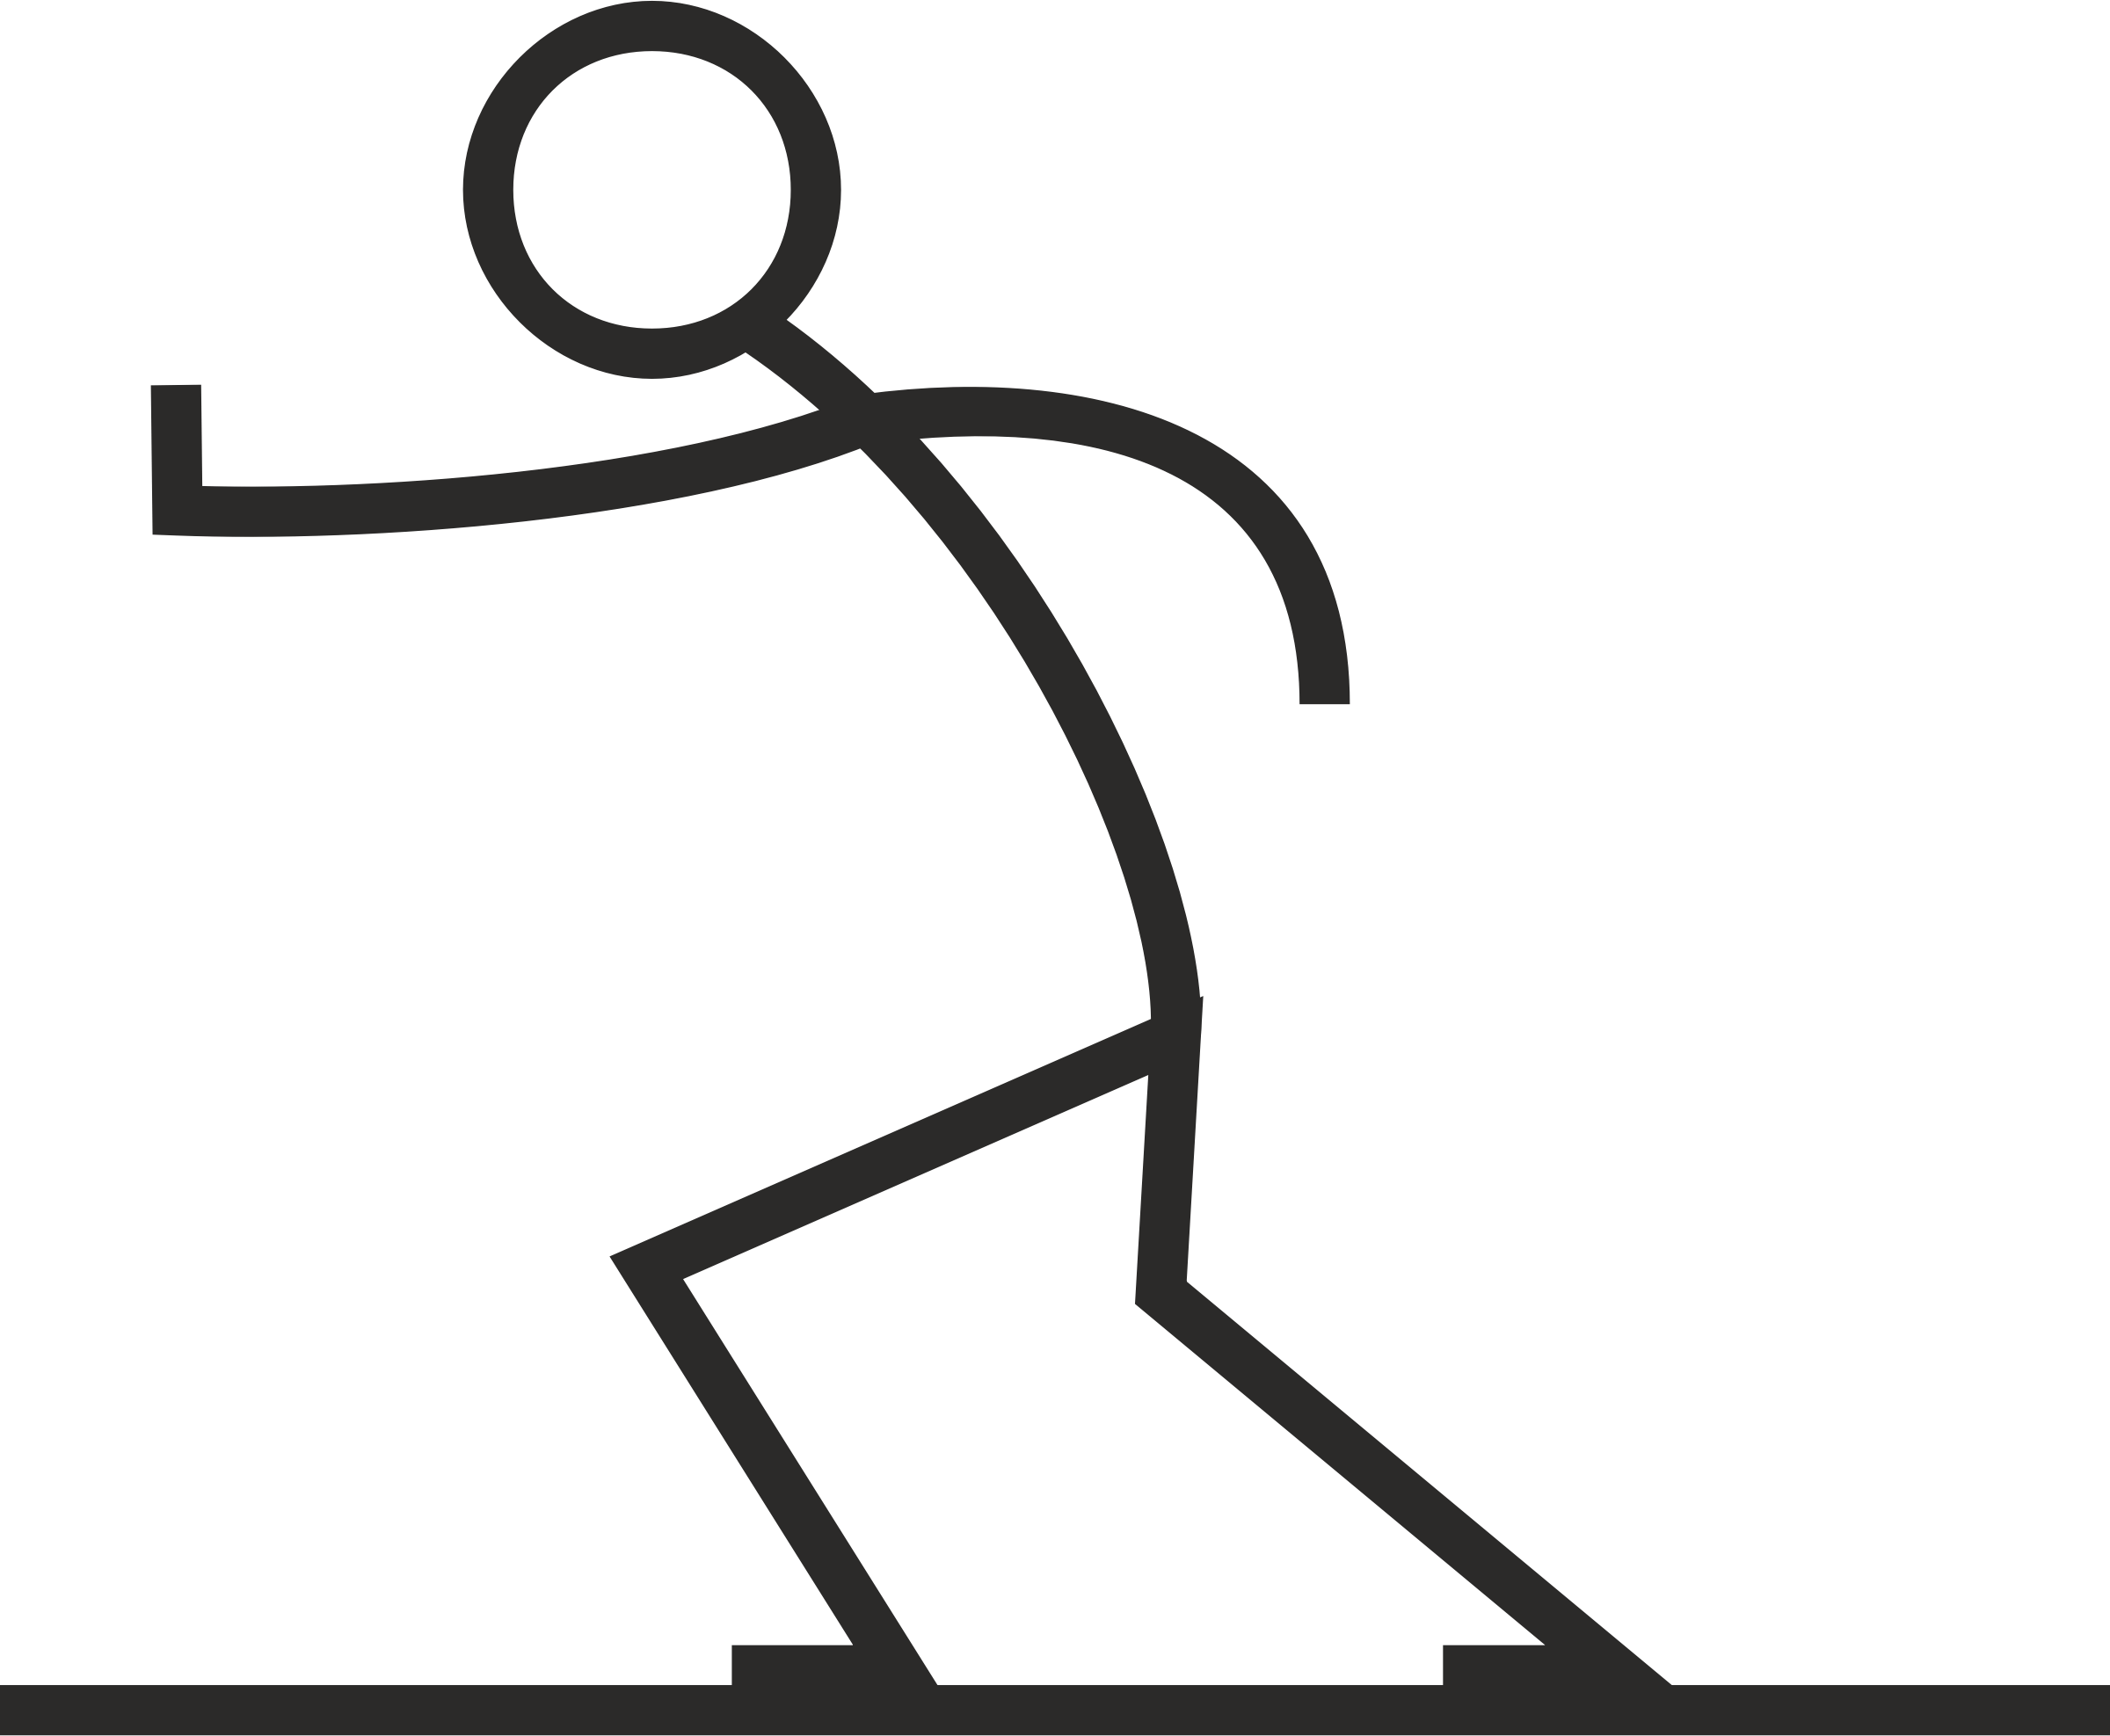 Download · people · stick figures - PNG HD Of Stick Figures